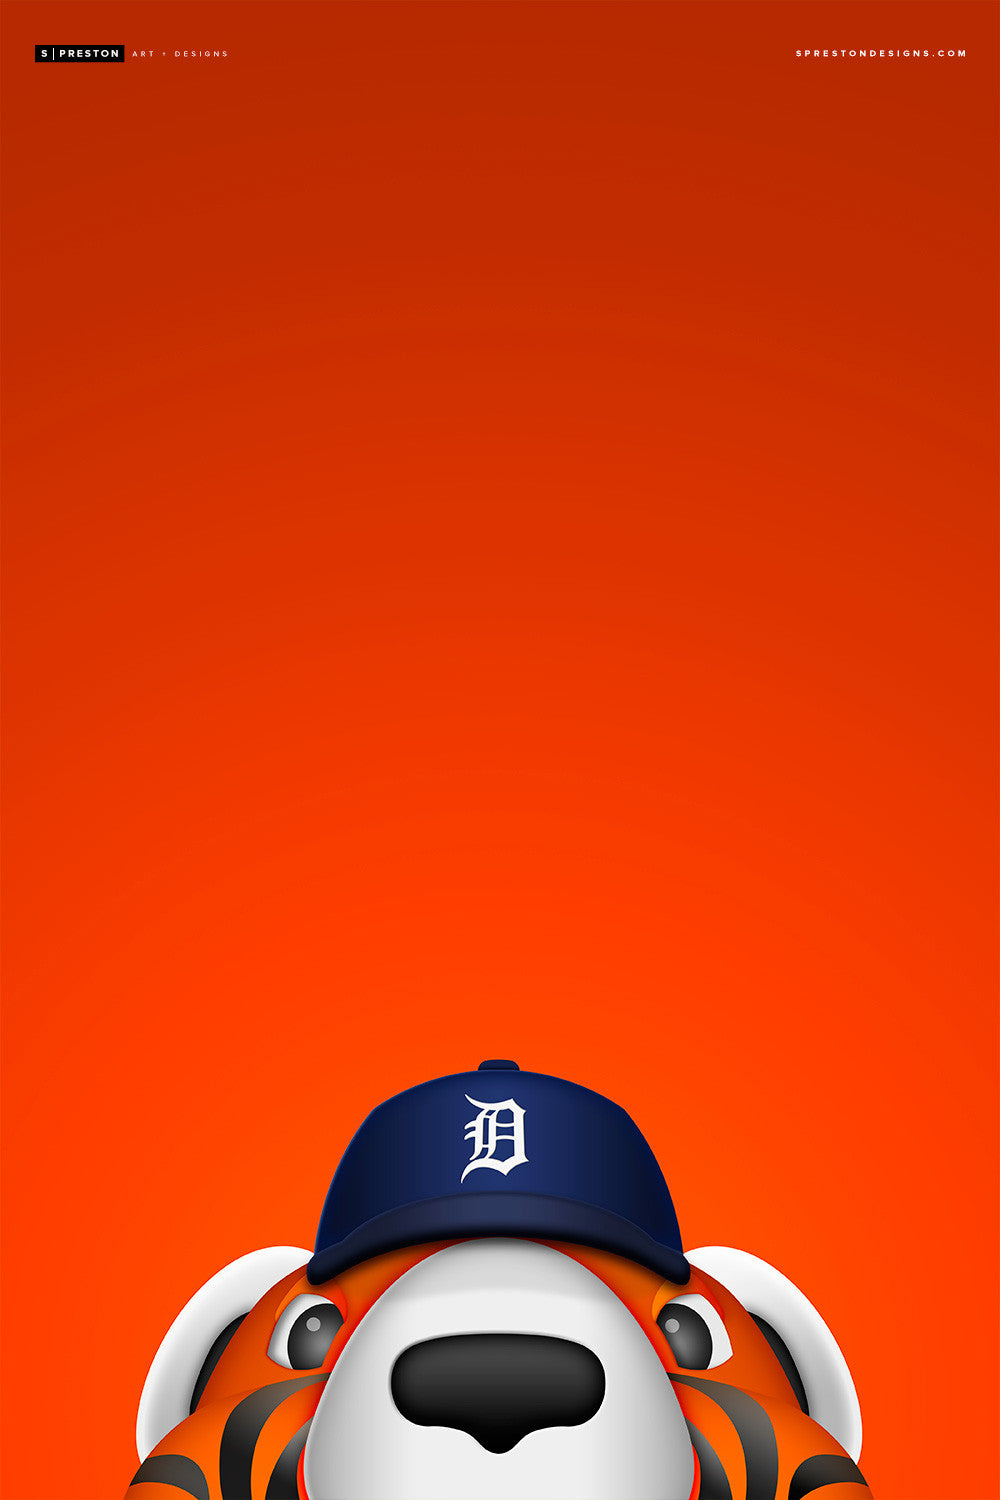 Minimalist Paws Canvas Canvas - Detroit Tigers - S. Preston Art + Designs